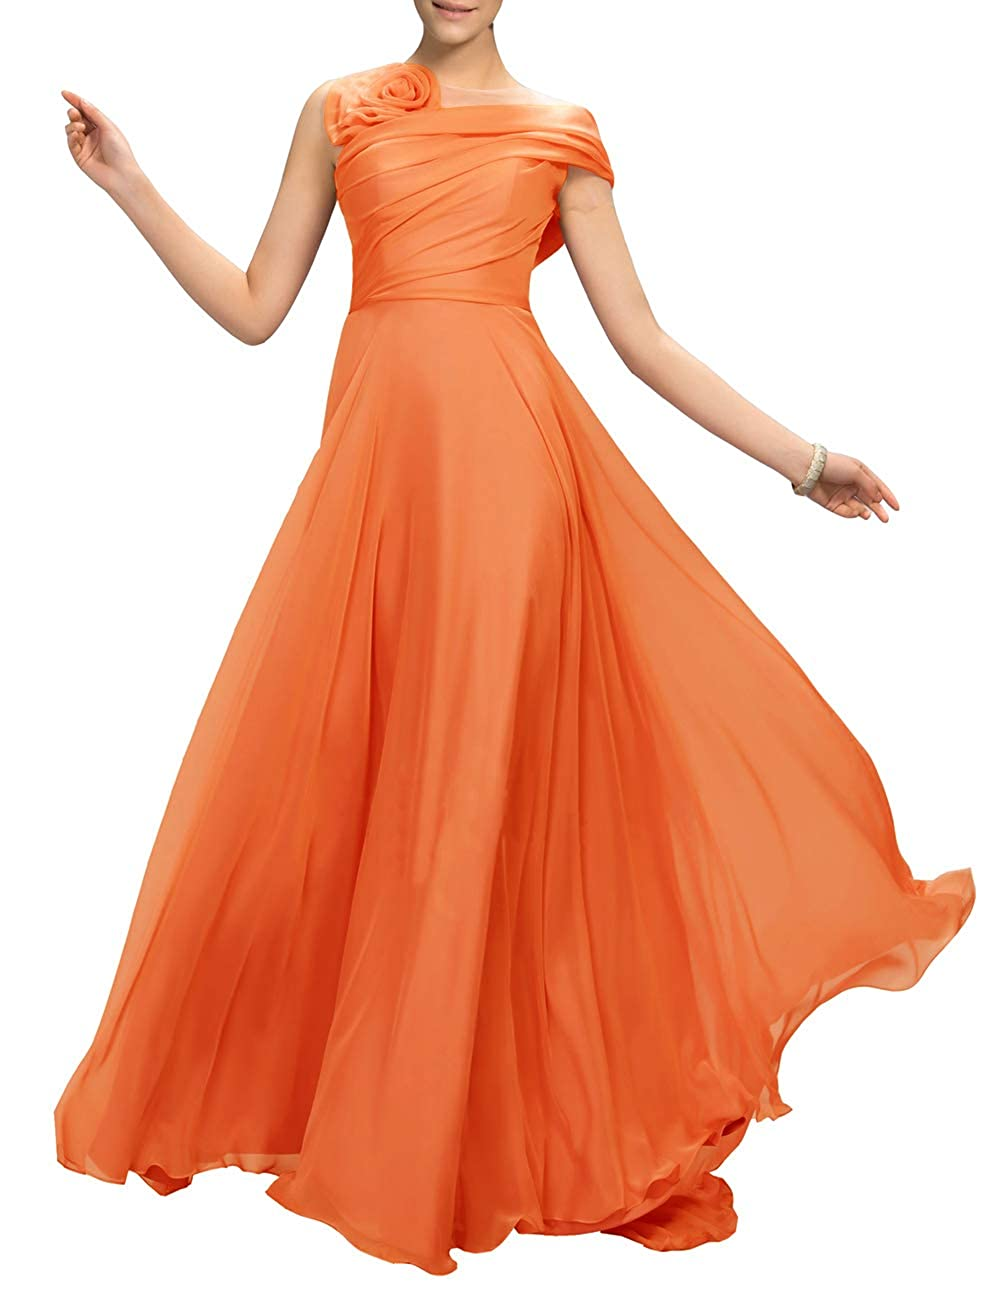 orange Uther Flower Long Prom Dress ALine Bridesmaid Dresses Formal Evening Party Gown